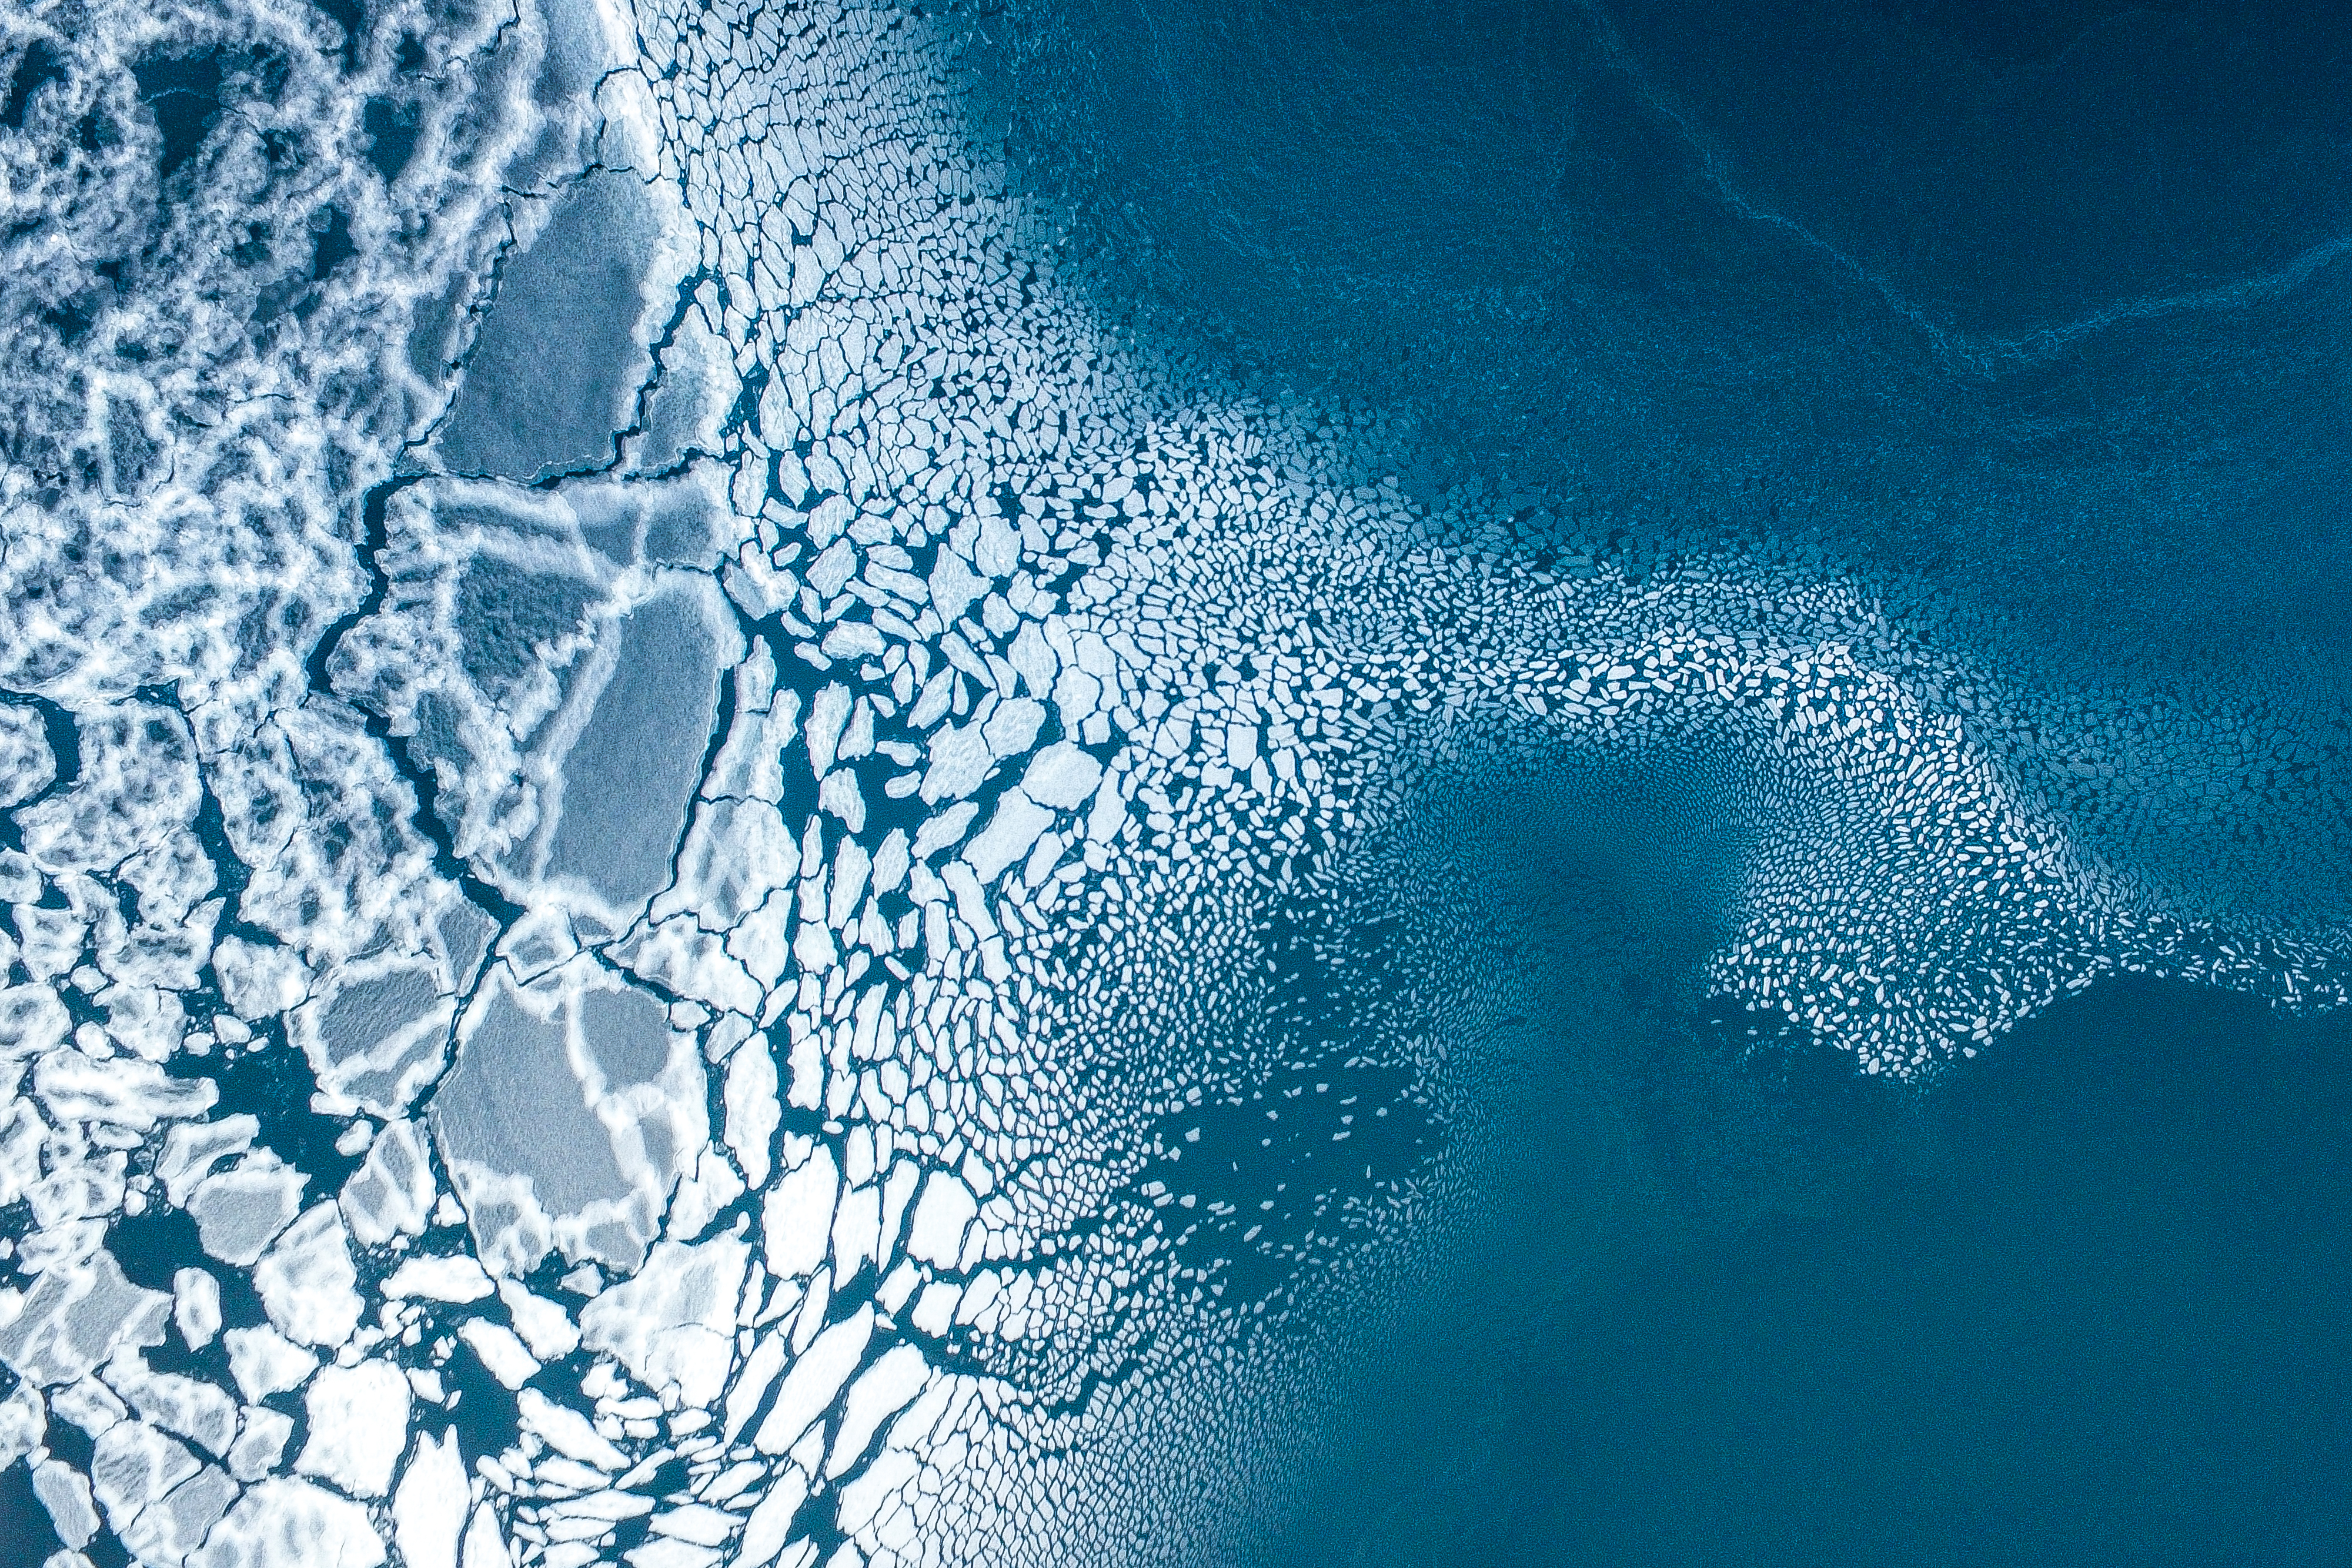 Ice Formation in Greenland by Florian (Florian/Dronestagram)